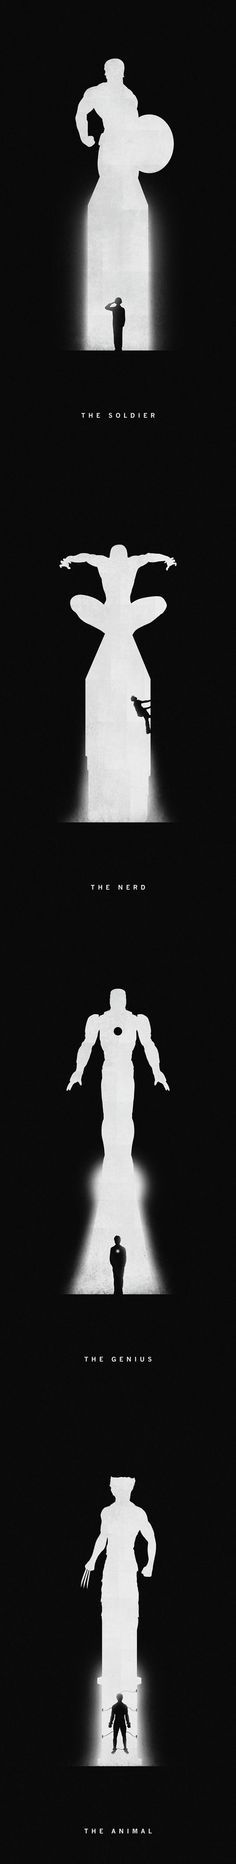 Superhero Artwork - repinning just for the Banner/Hulk feels that came out of nowhere. I need to go lie down now.